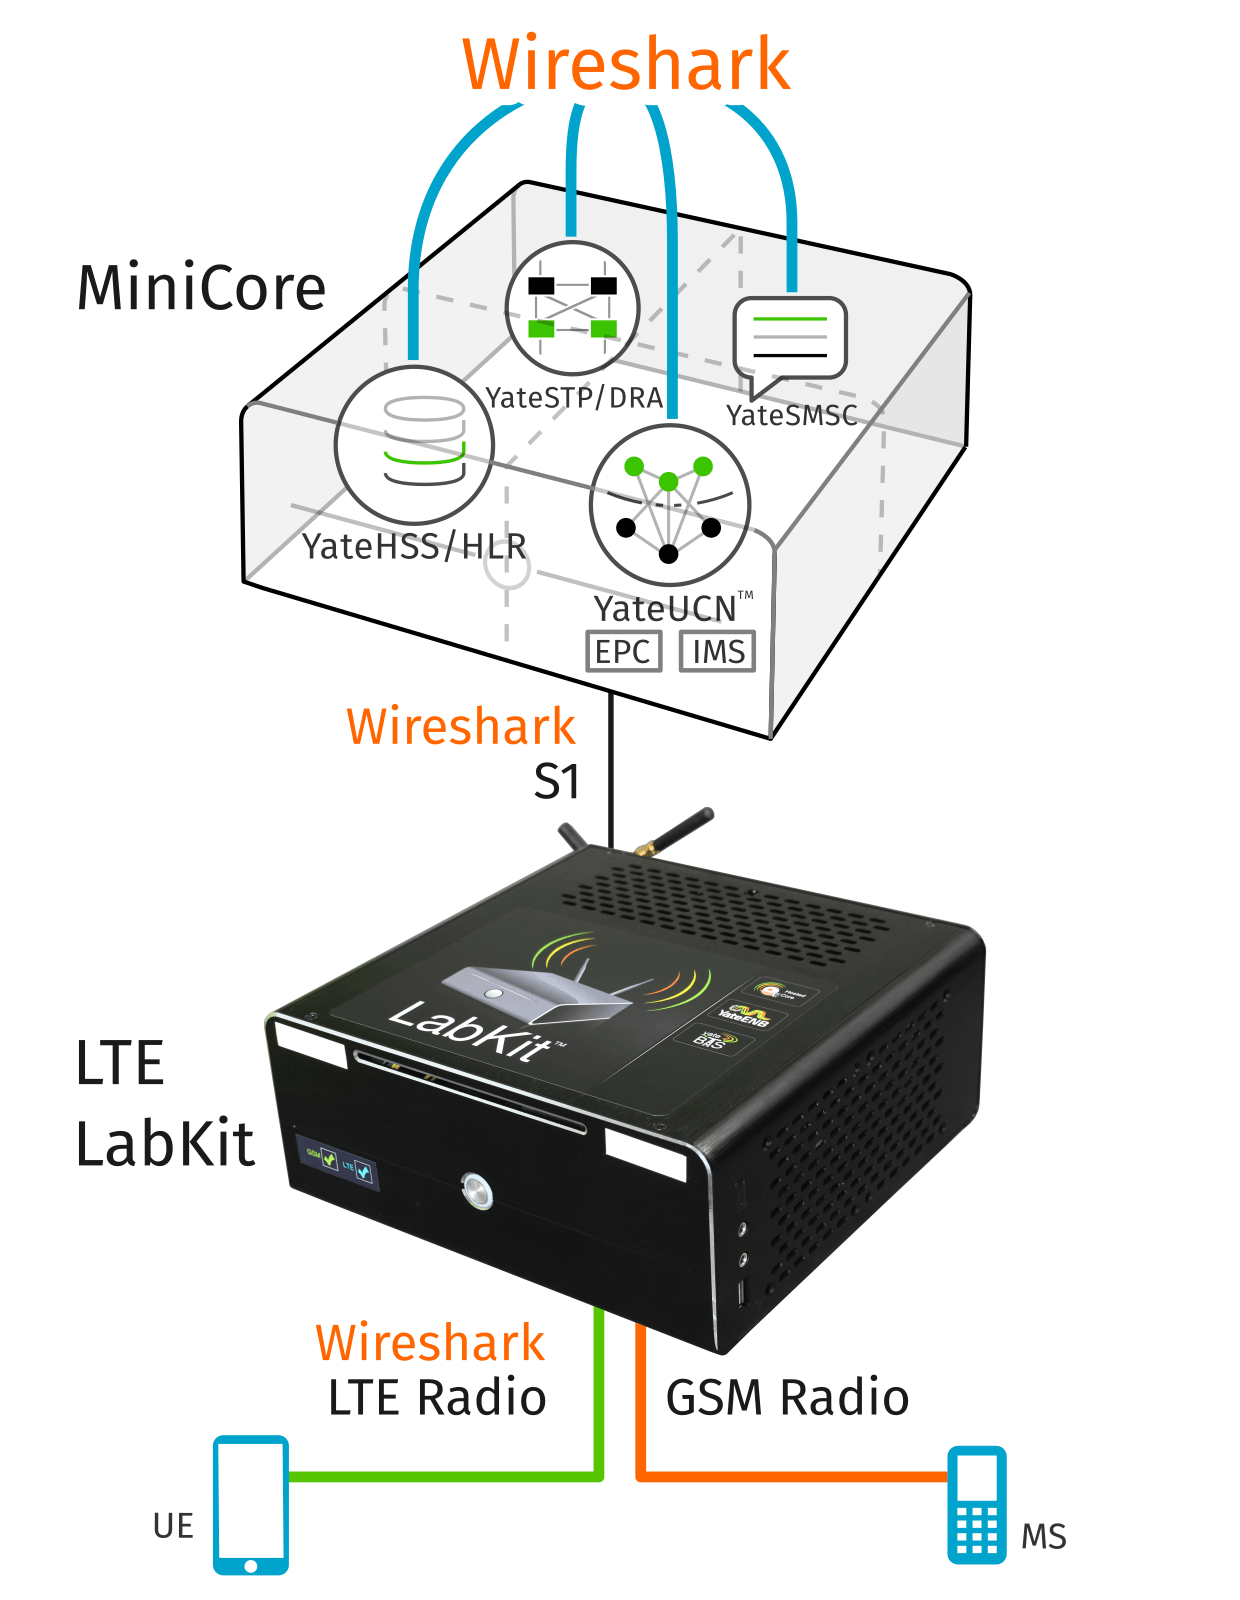 MiniCore and LabKit - full LTE network